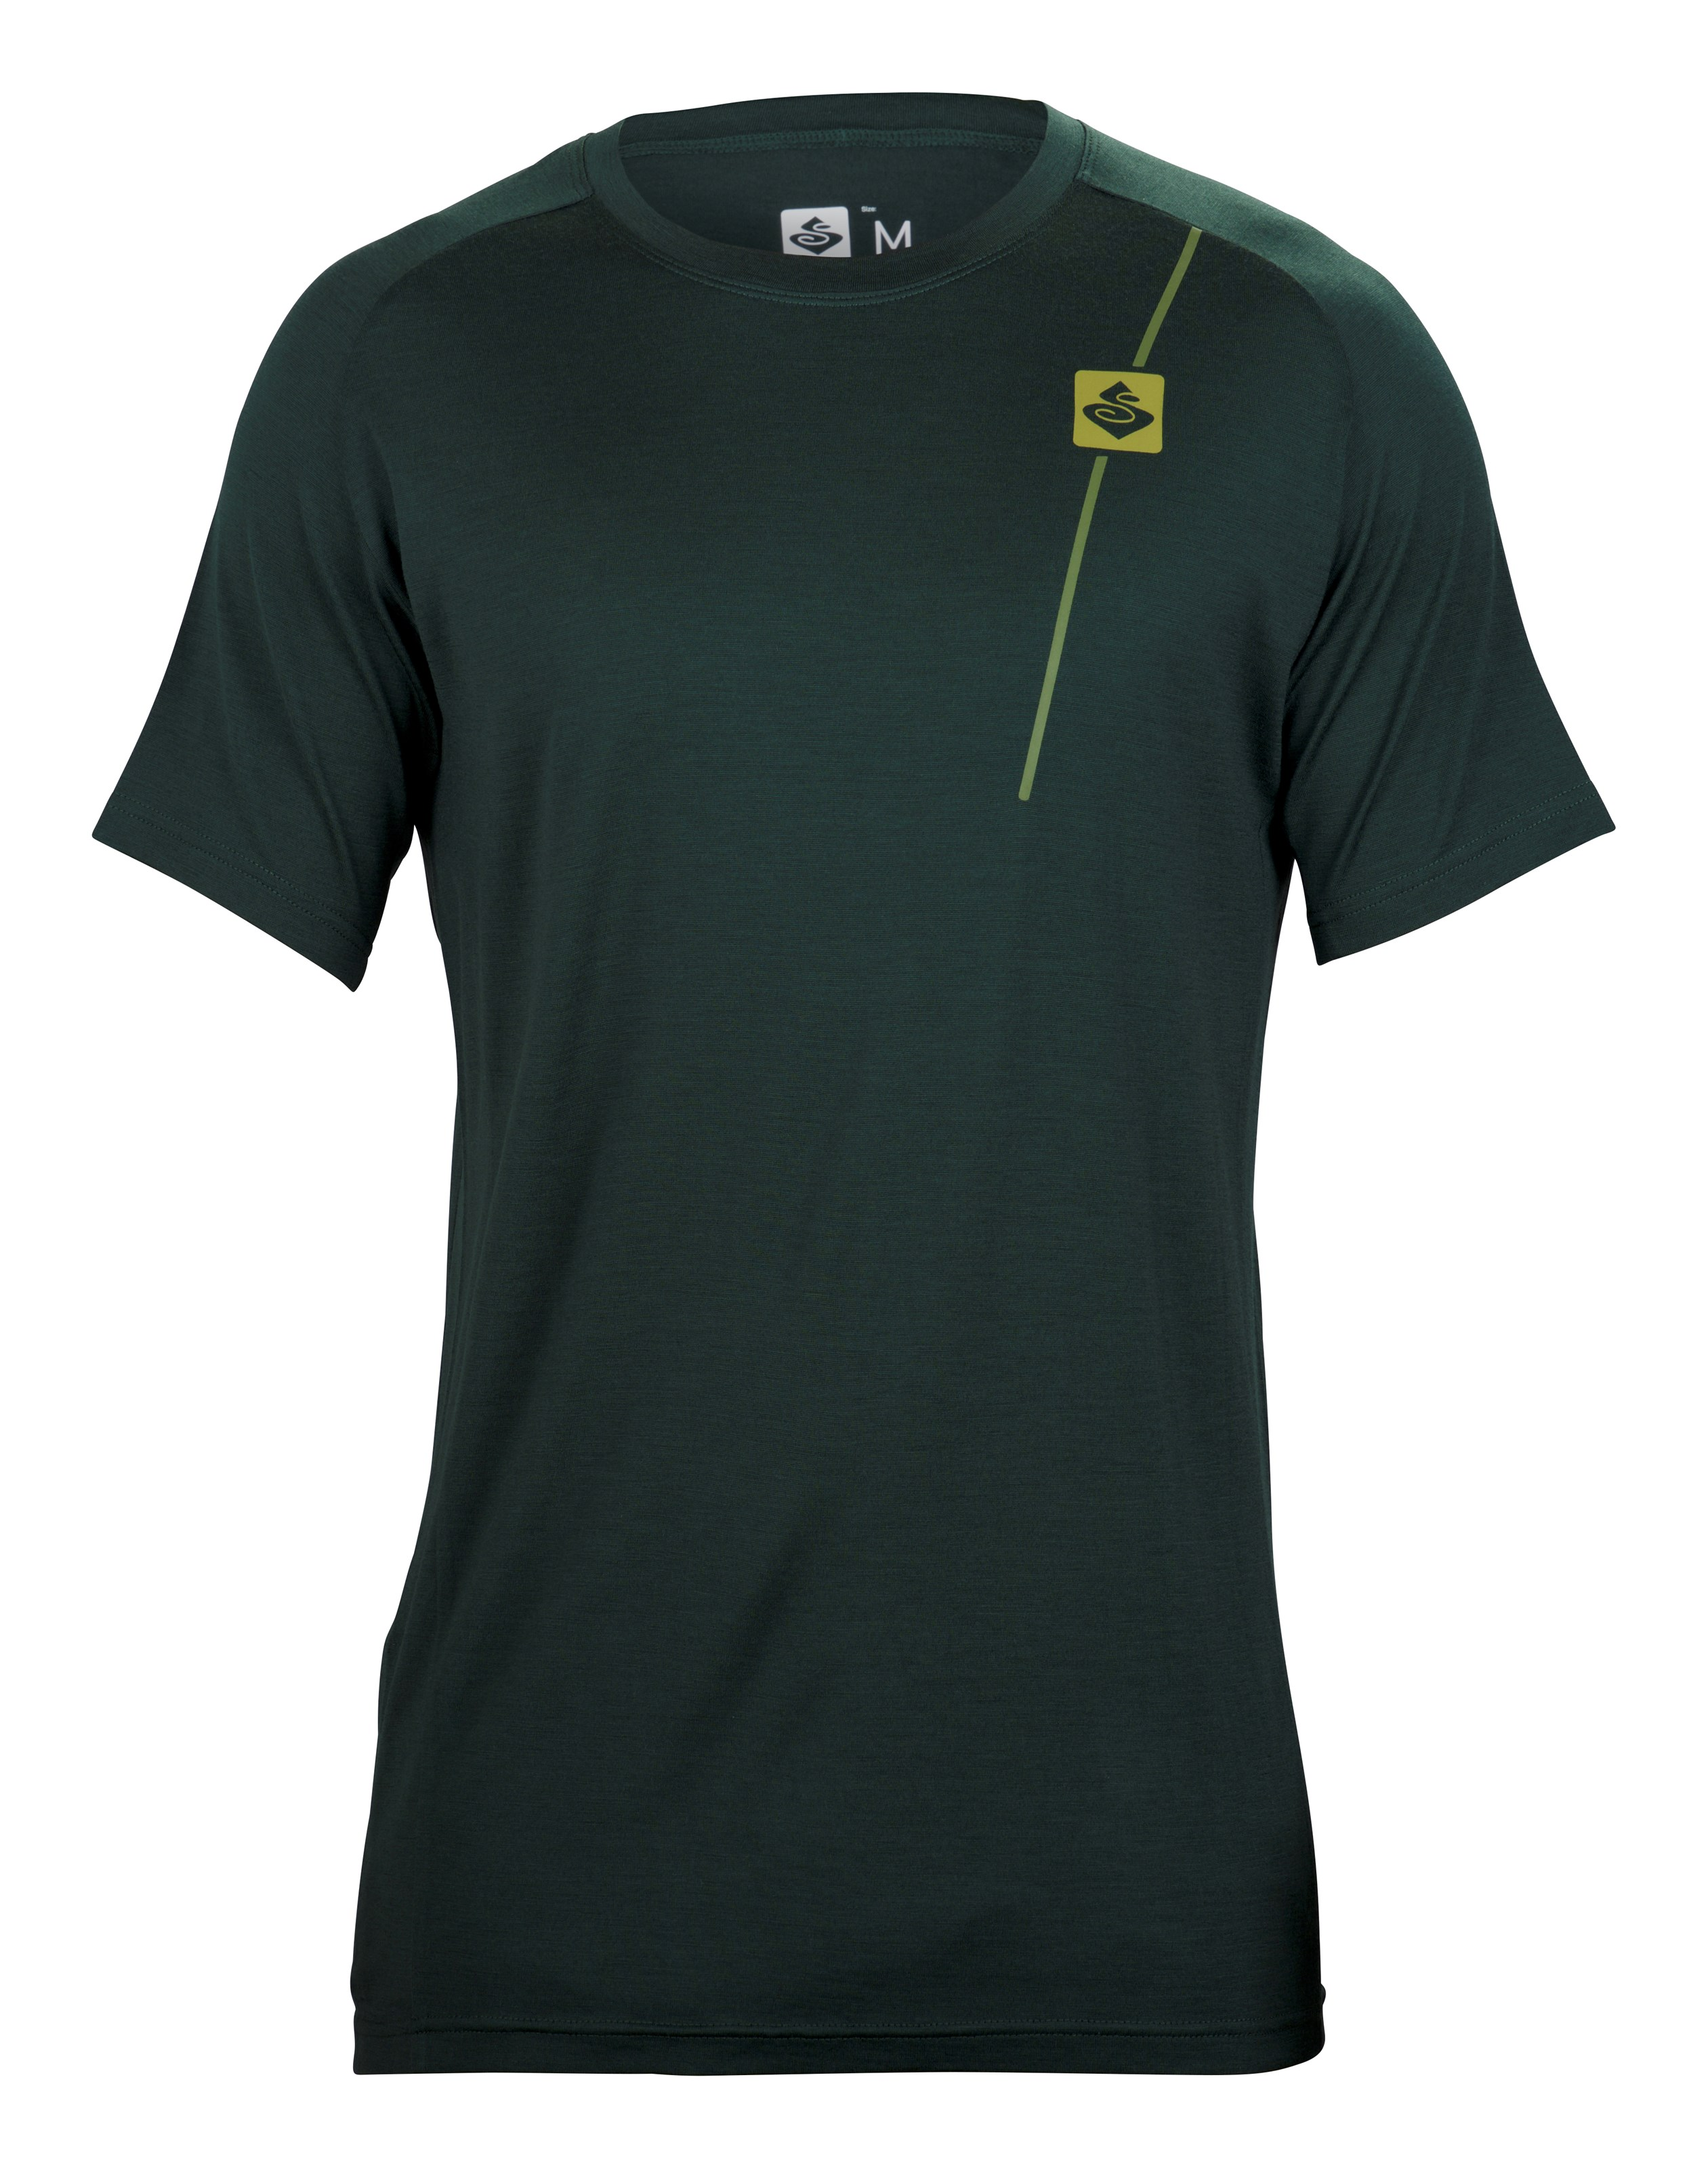 828043-badlands-merino_ss_jersey-forest_green_front.jpg